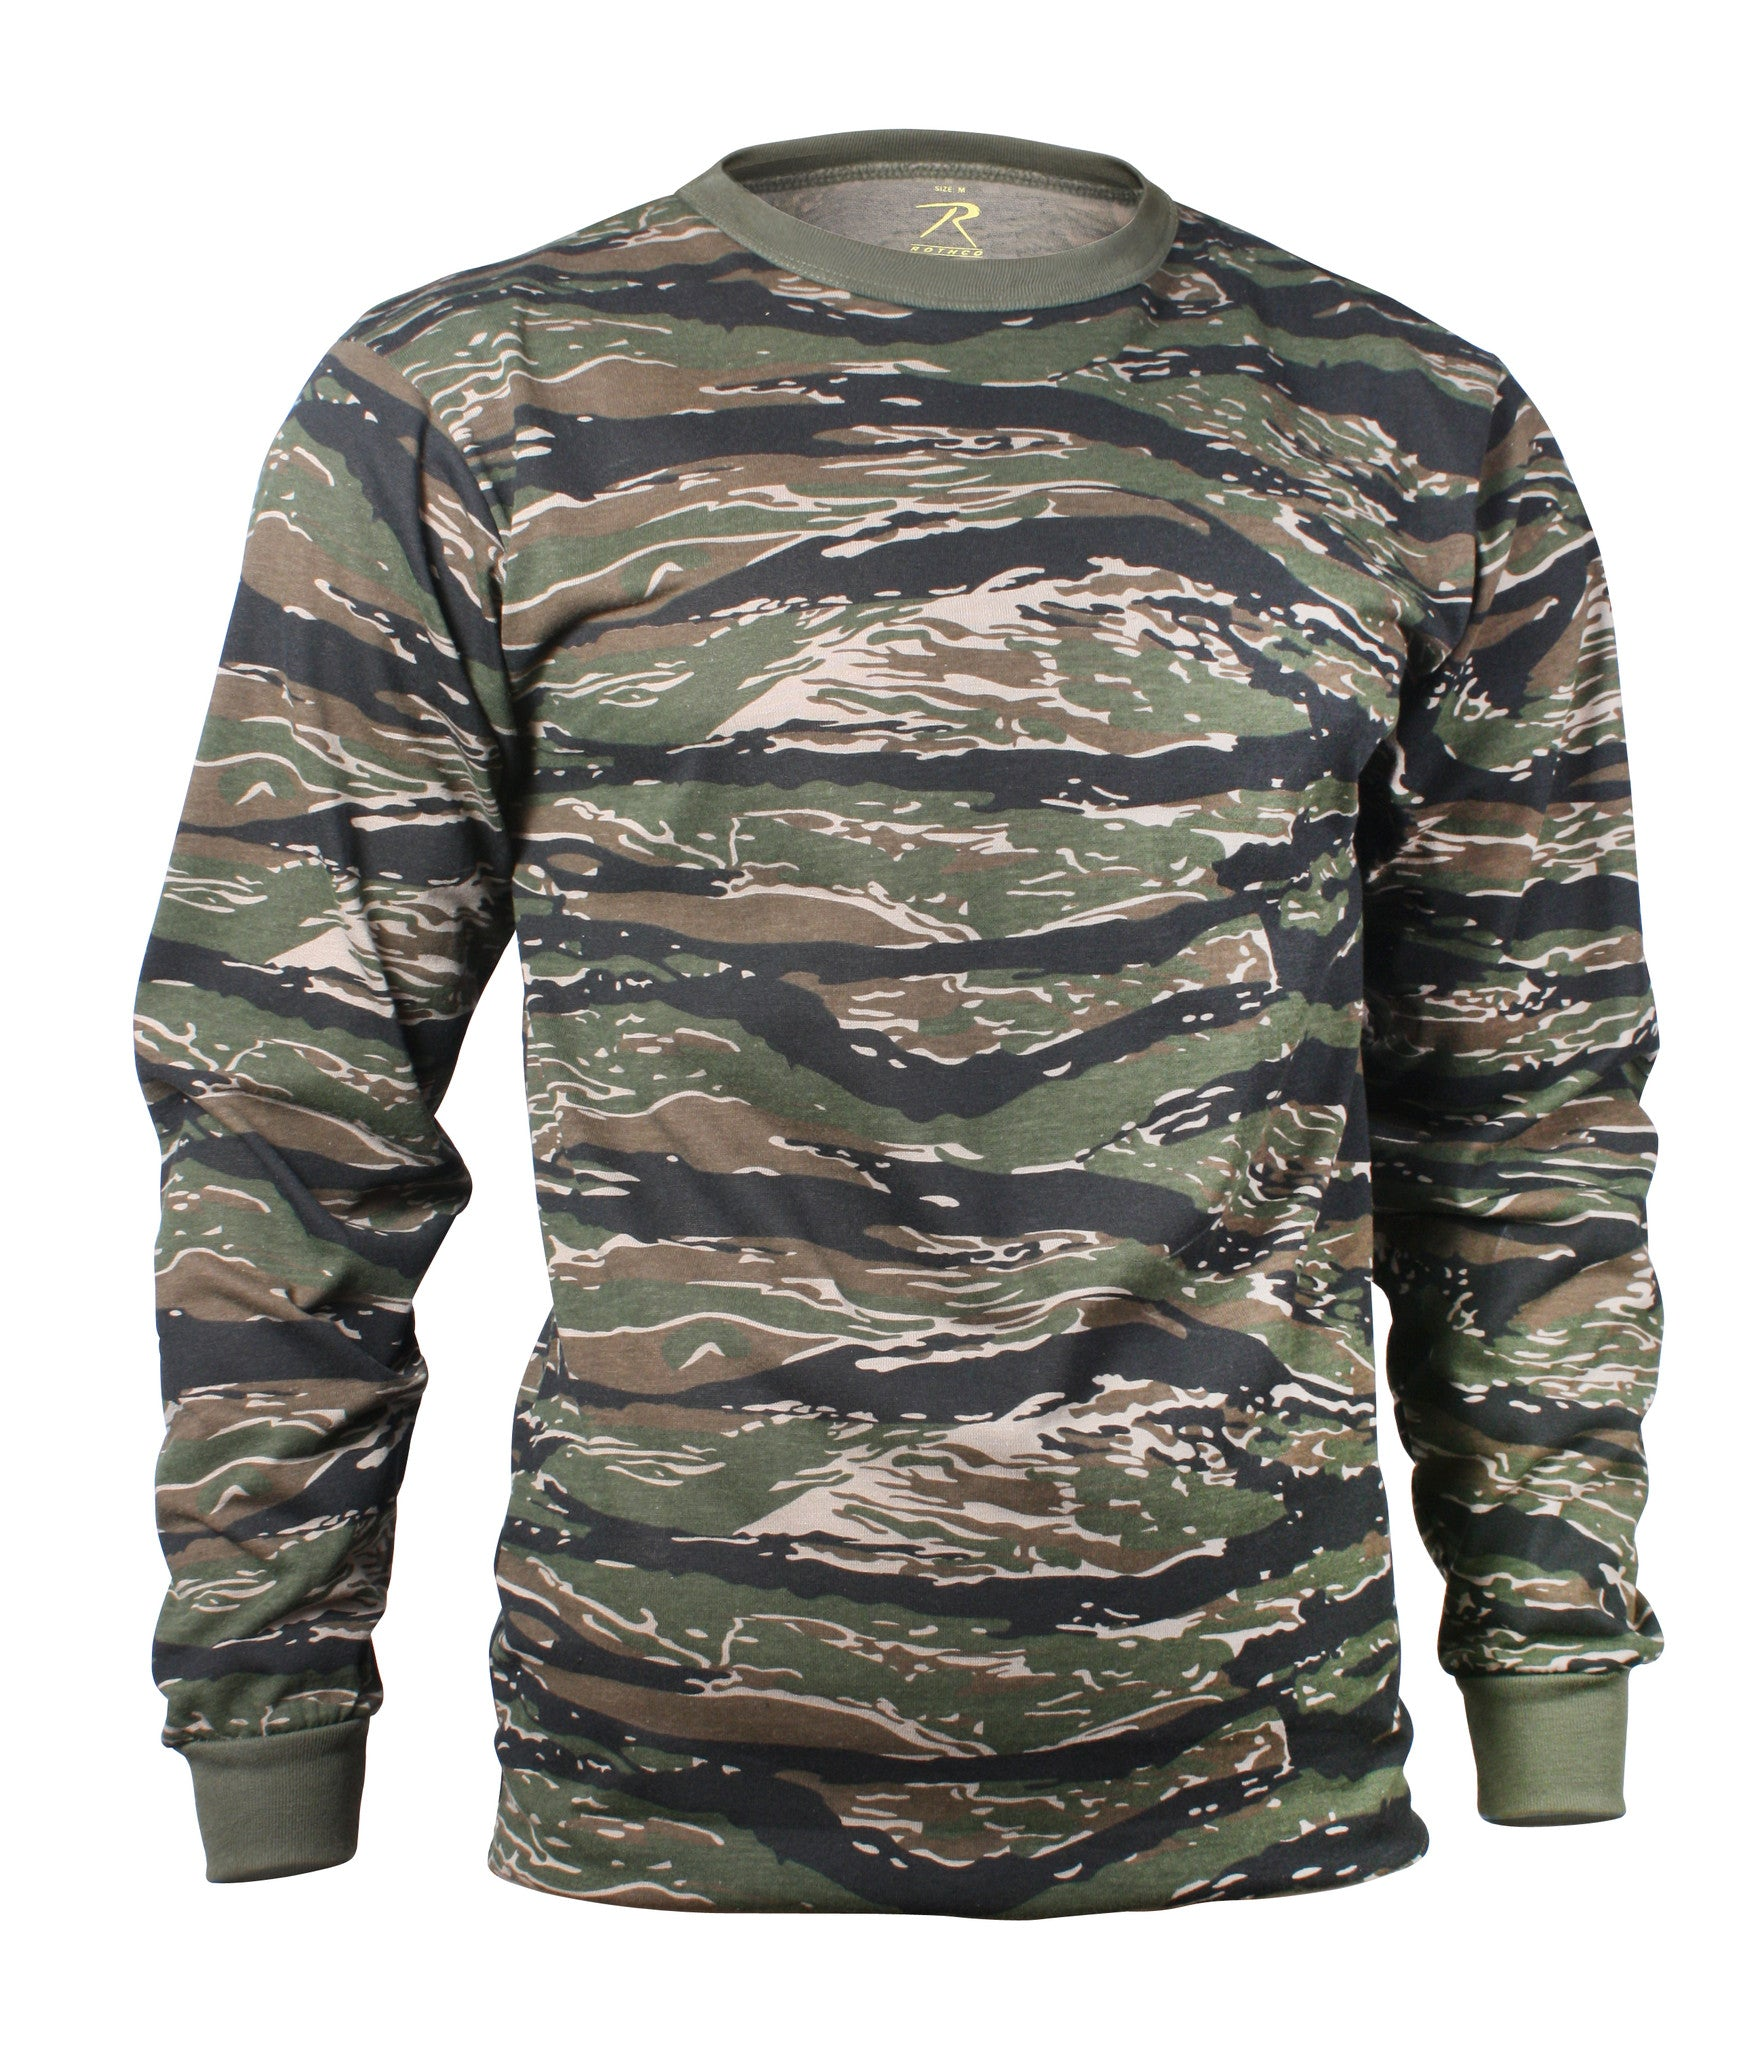 00ac5ec70 Rothco Shirts: Camo Long Sleeve T-Shirts – Army Navy Now